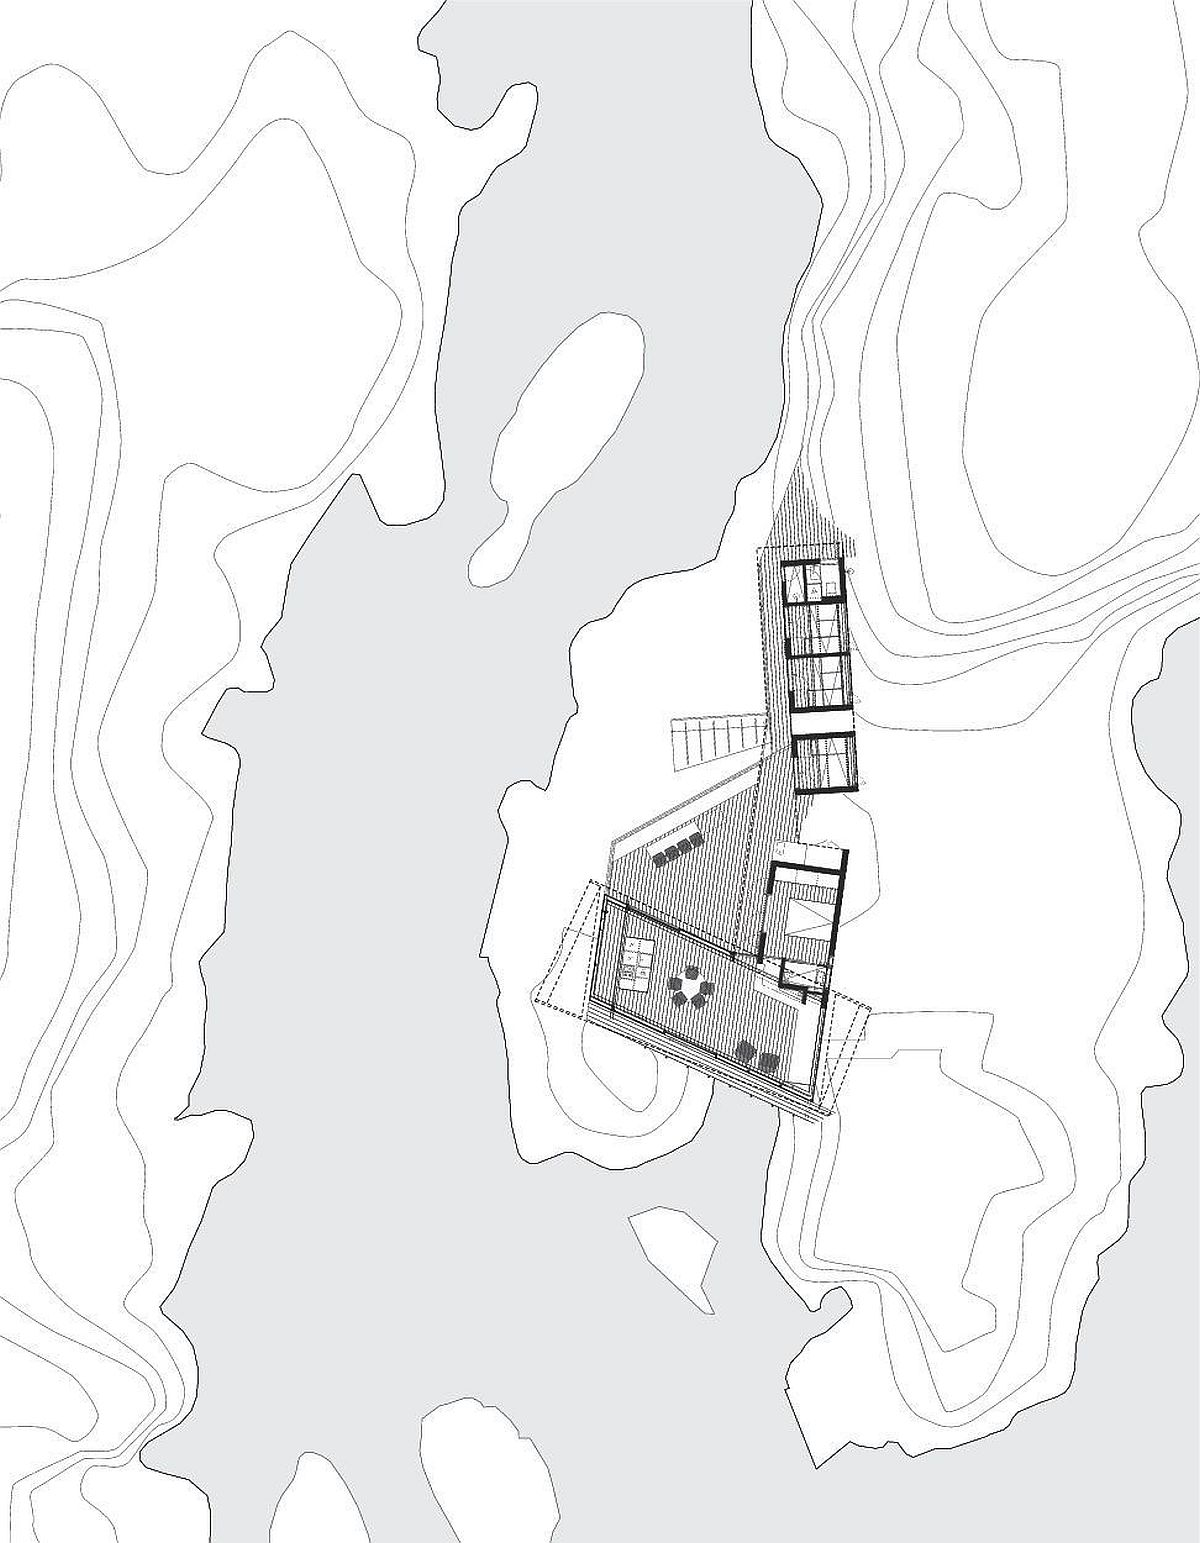 Site plan of amazing Norwegian getaway on an island